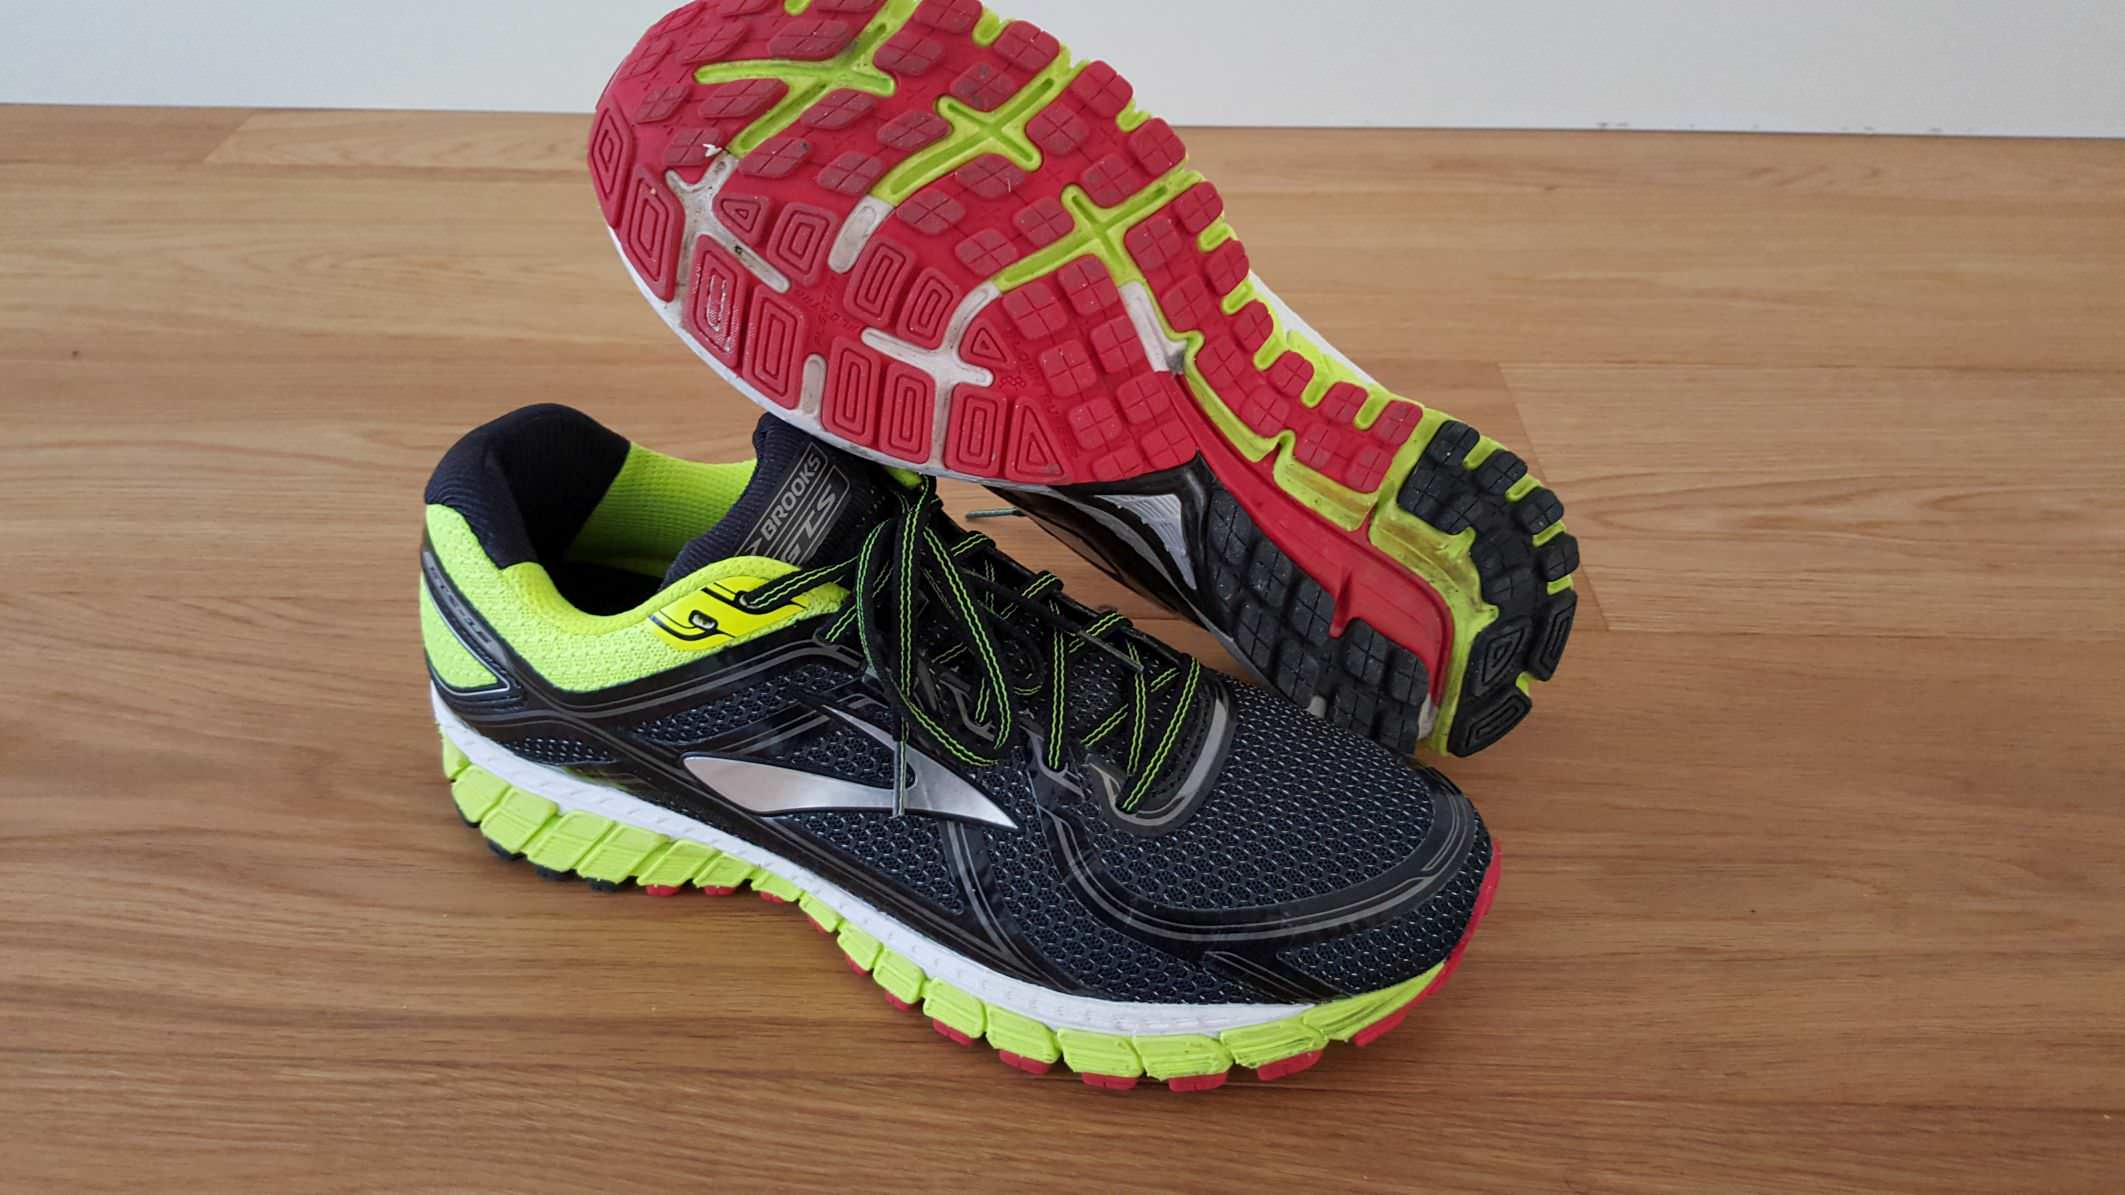 Brooks Adrenalin Gts 16 Vs Asics Gel Nimbus 18 rTnfs